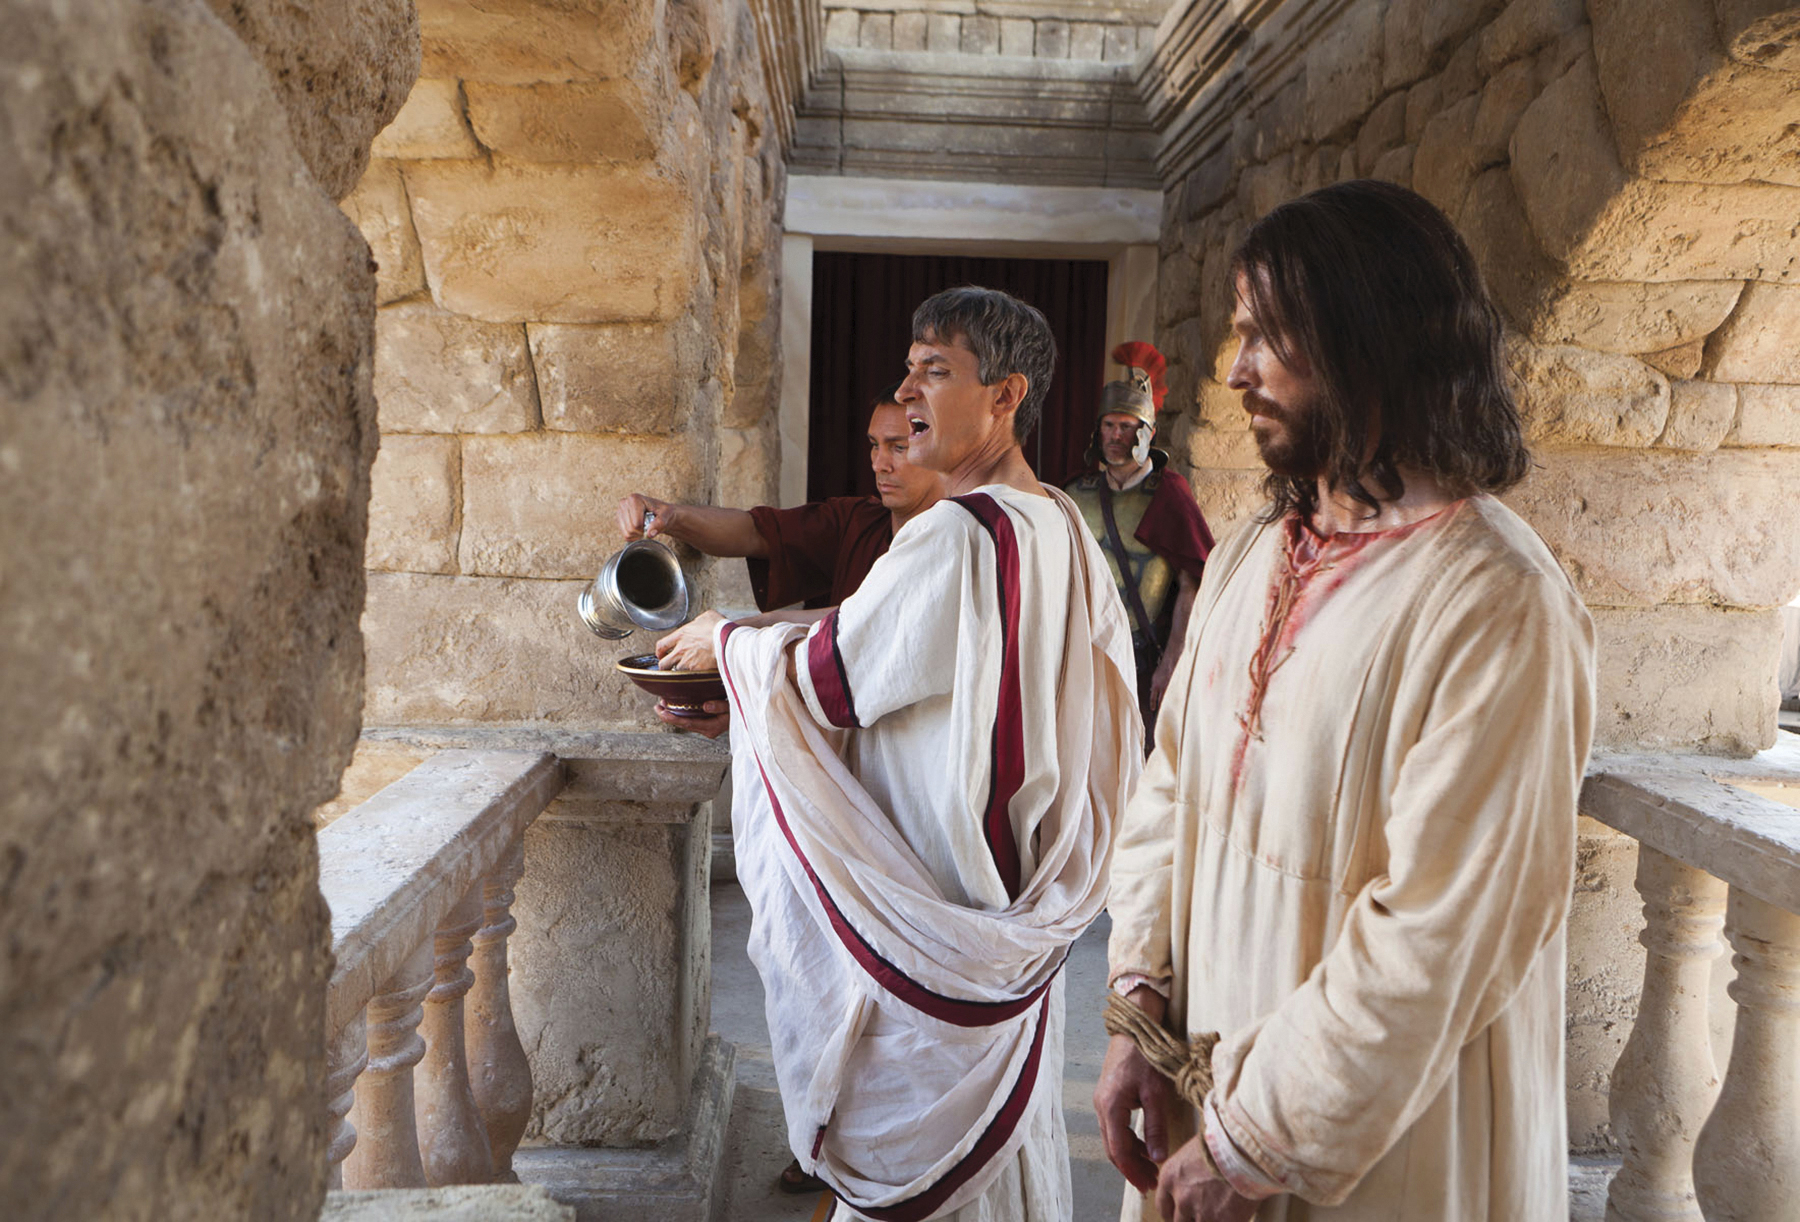 Pilate speaks to the people in the crowd and washes his hands of their accusations of Christ.